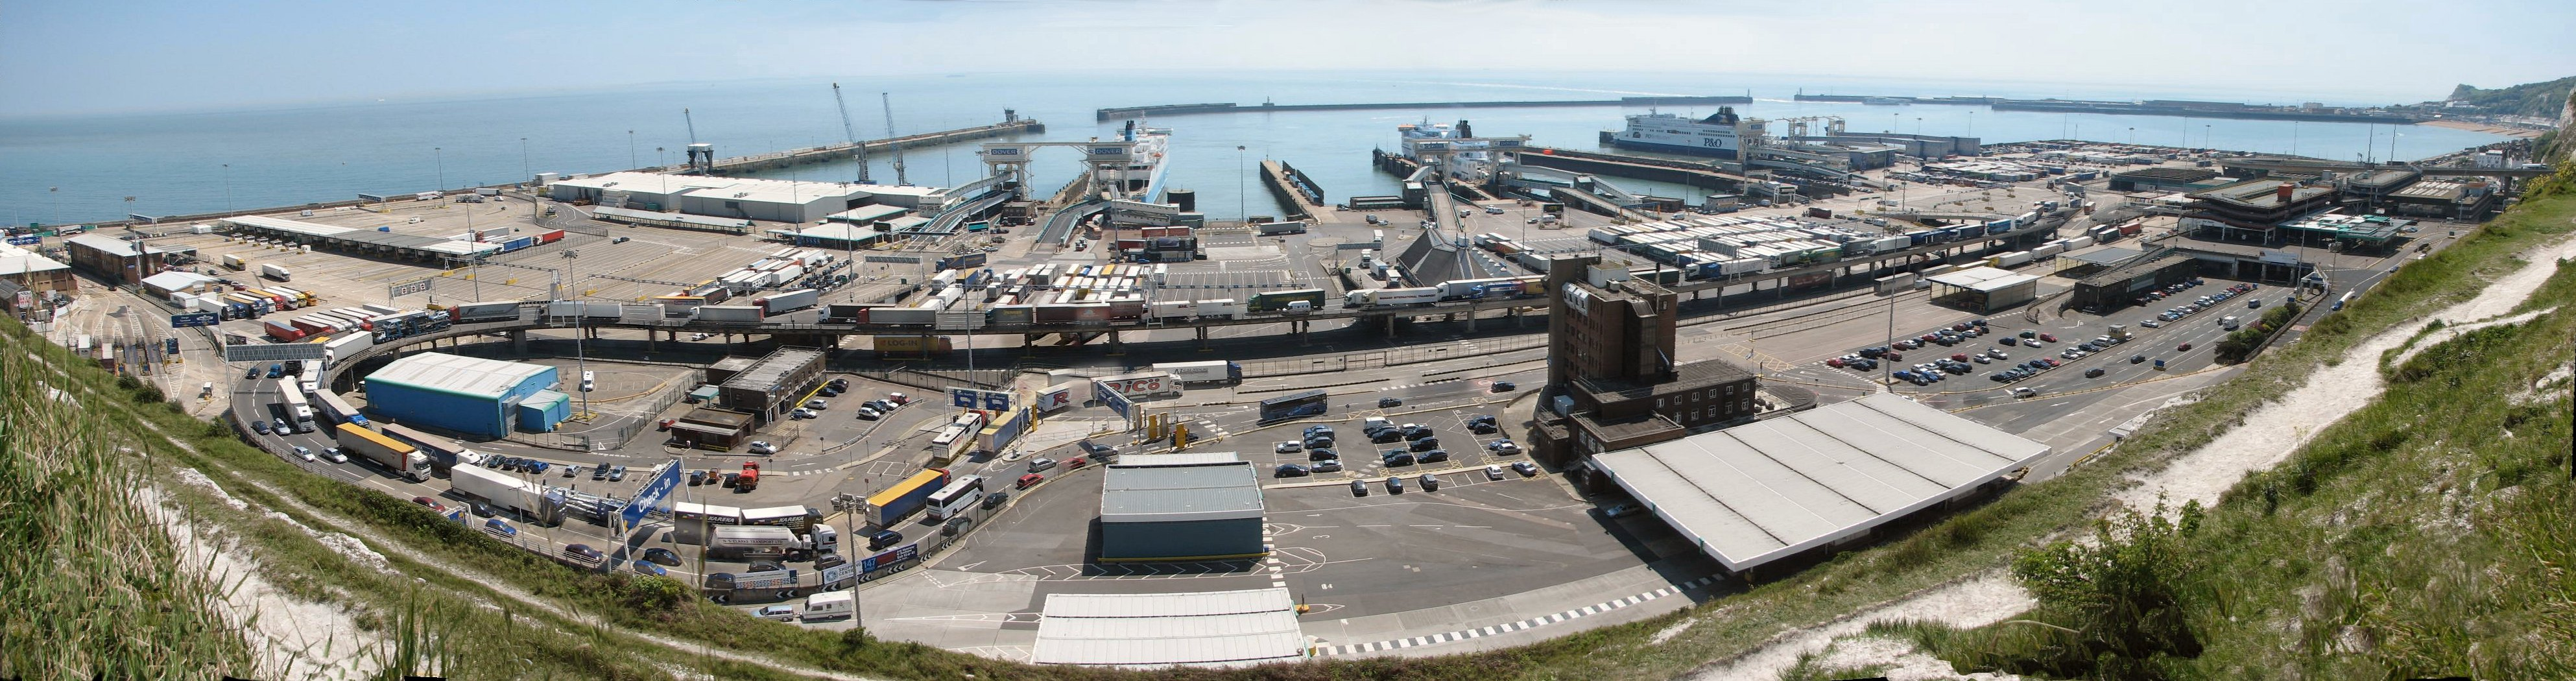 Dover_Harbour_panorama